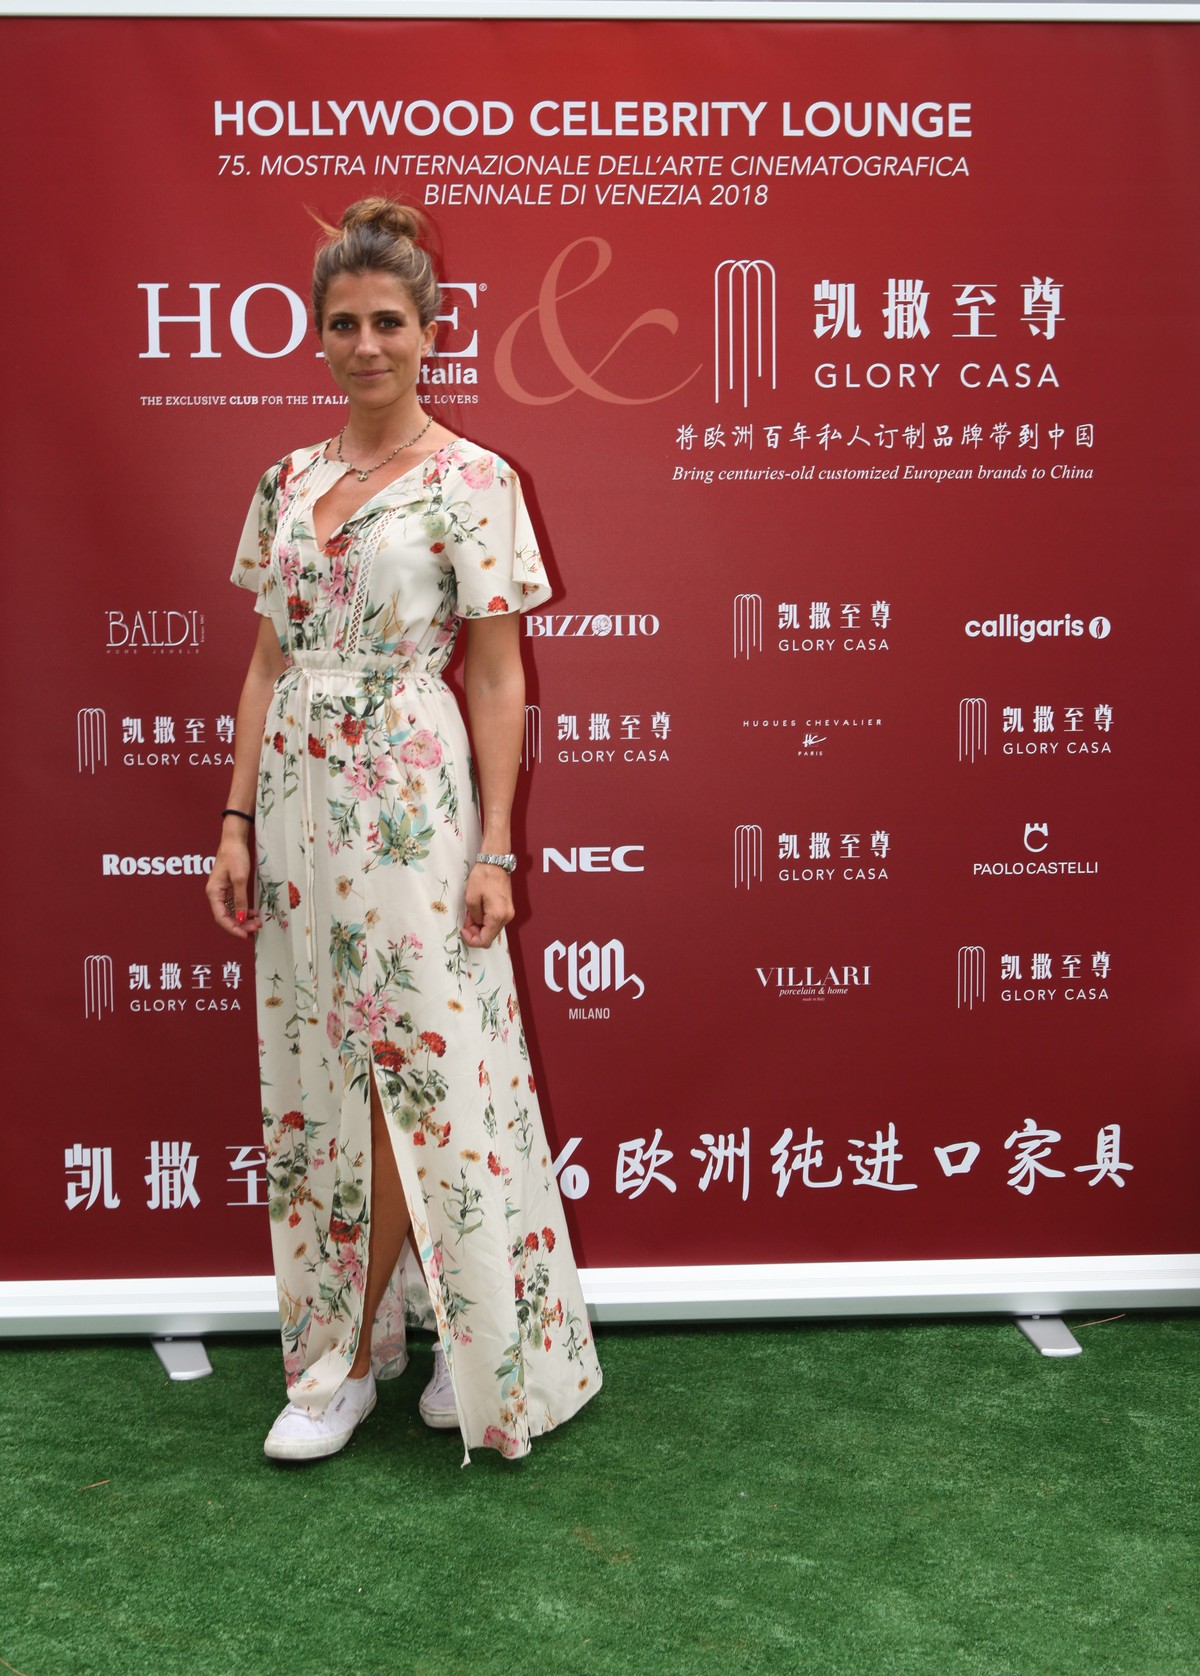 Festival Cinema Venezia 2018 Hollywood Celebrities Lounge